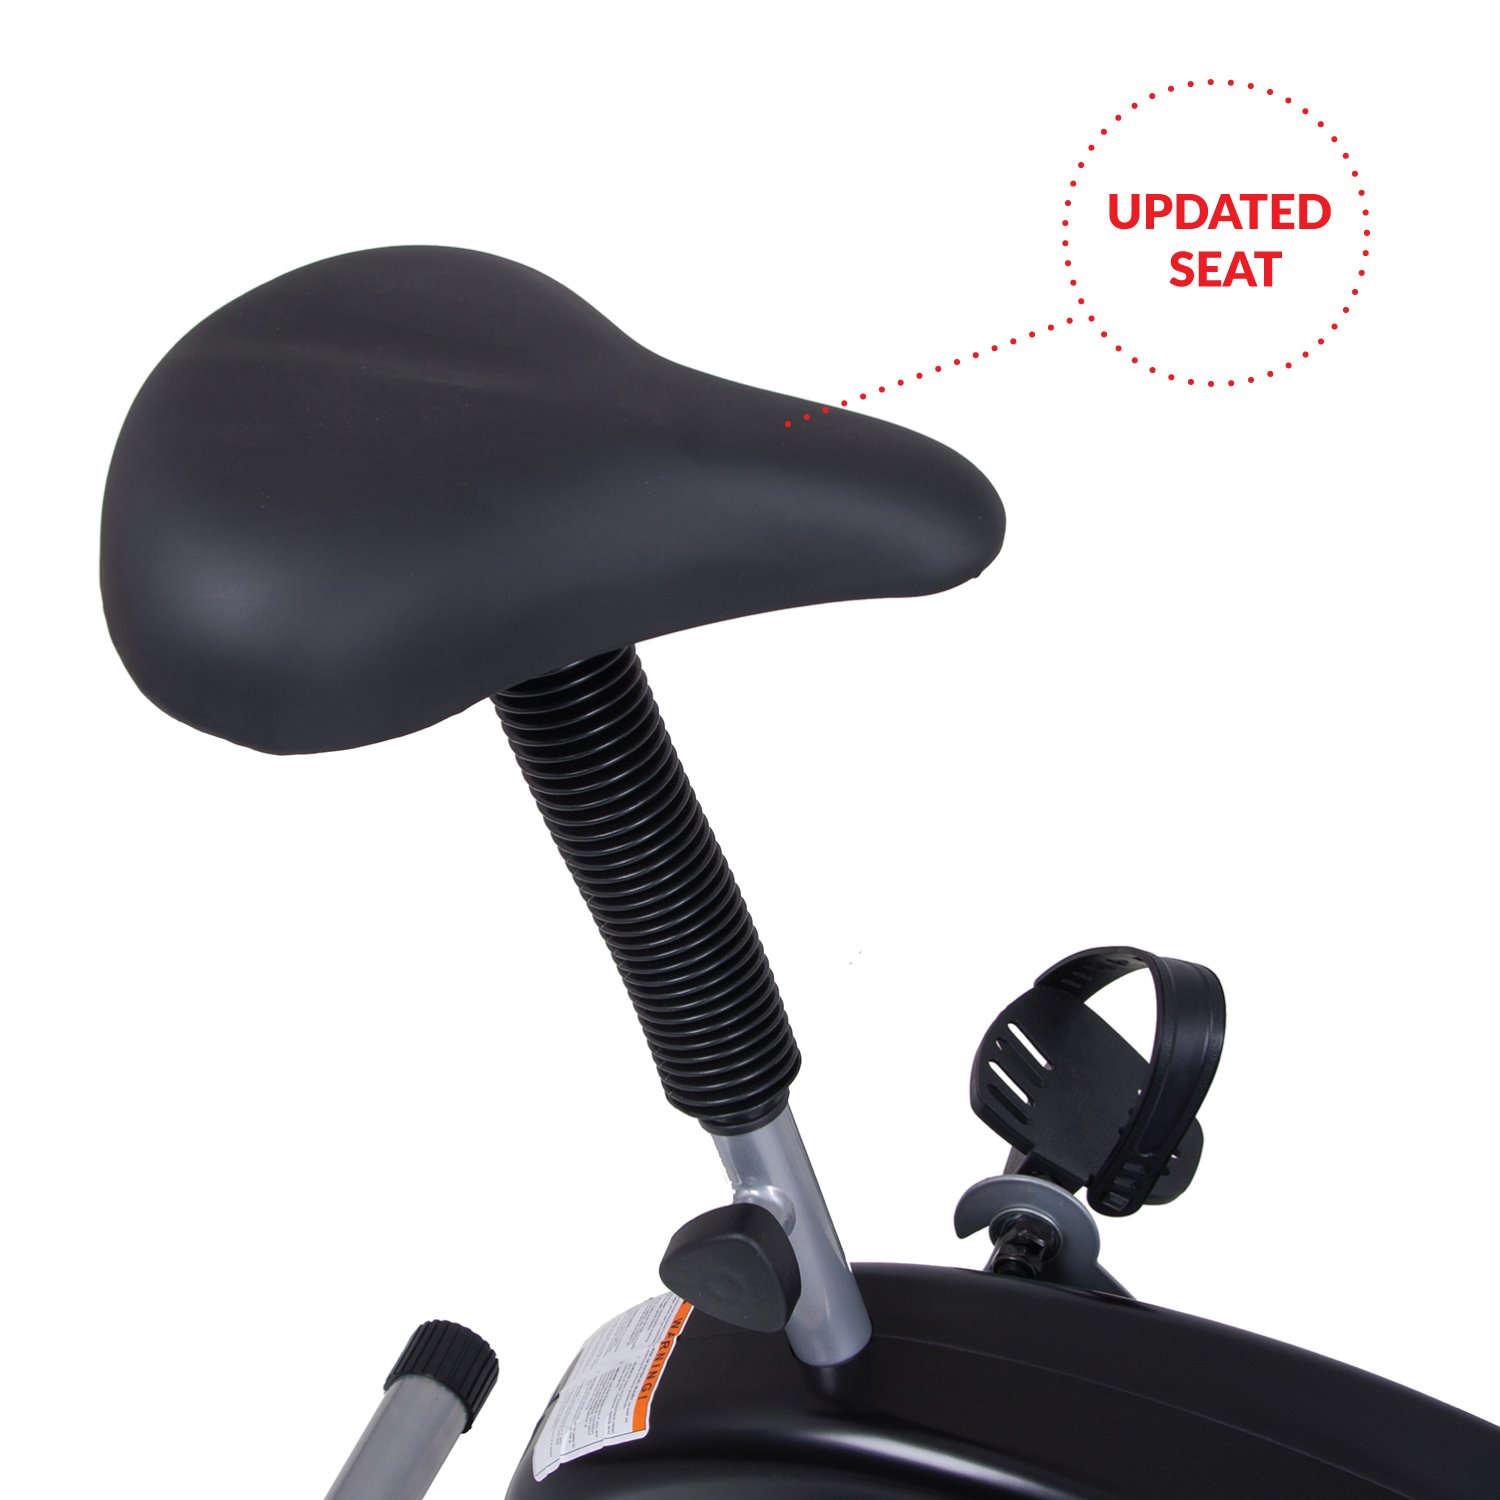 Body Rider Exercise Upright Fan Bike (with UPDATED Softer Seat) Stationary Fitness/Adjustable Seat BRF700 by Body Rider (Image #5)